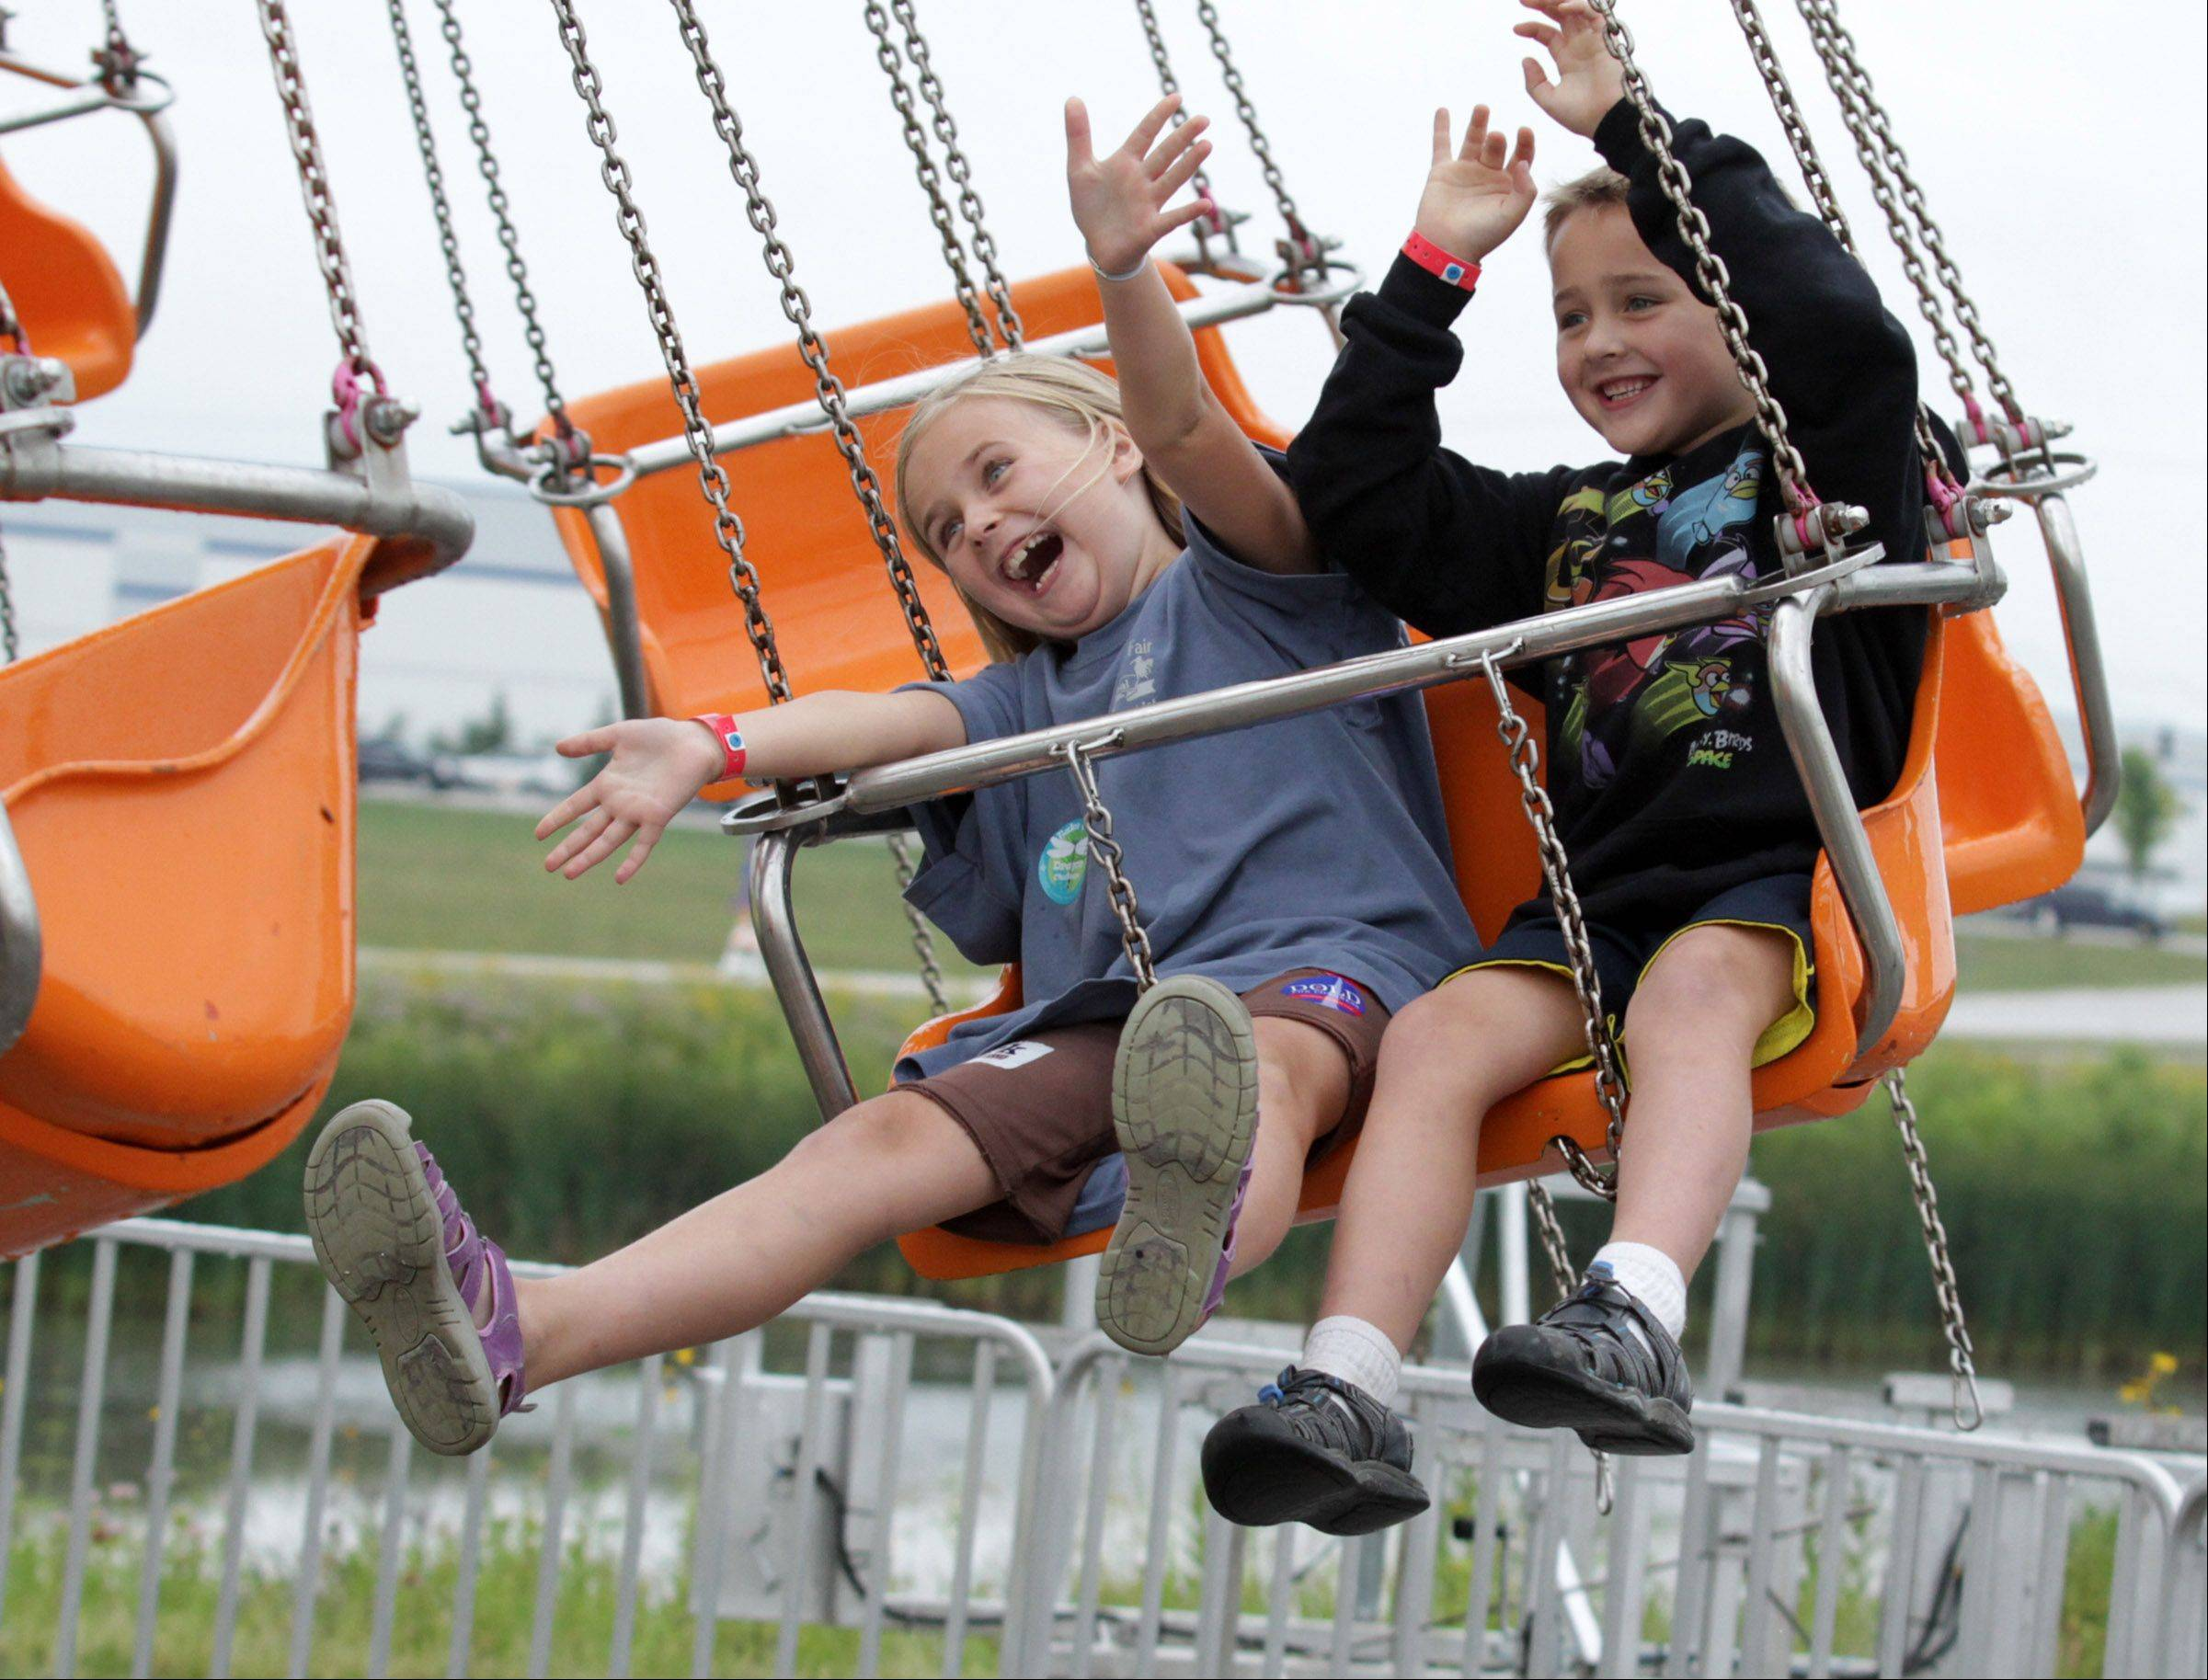 Kailyn, 6, and her brother Dylan May, 9, of Zion ride the spinning swing.